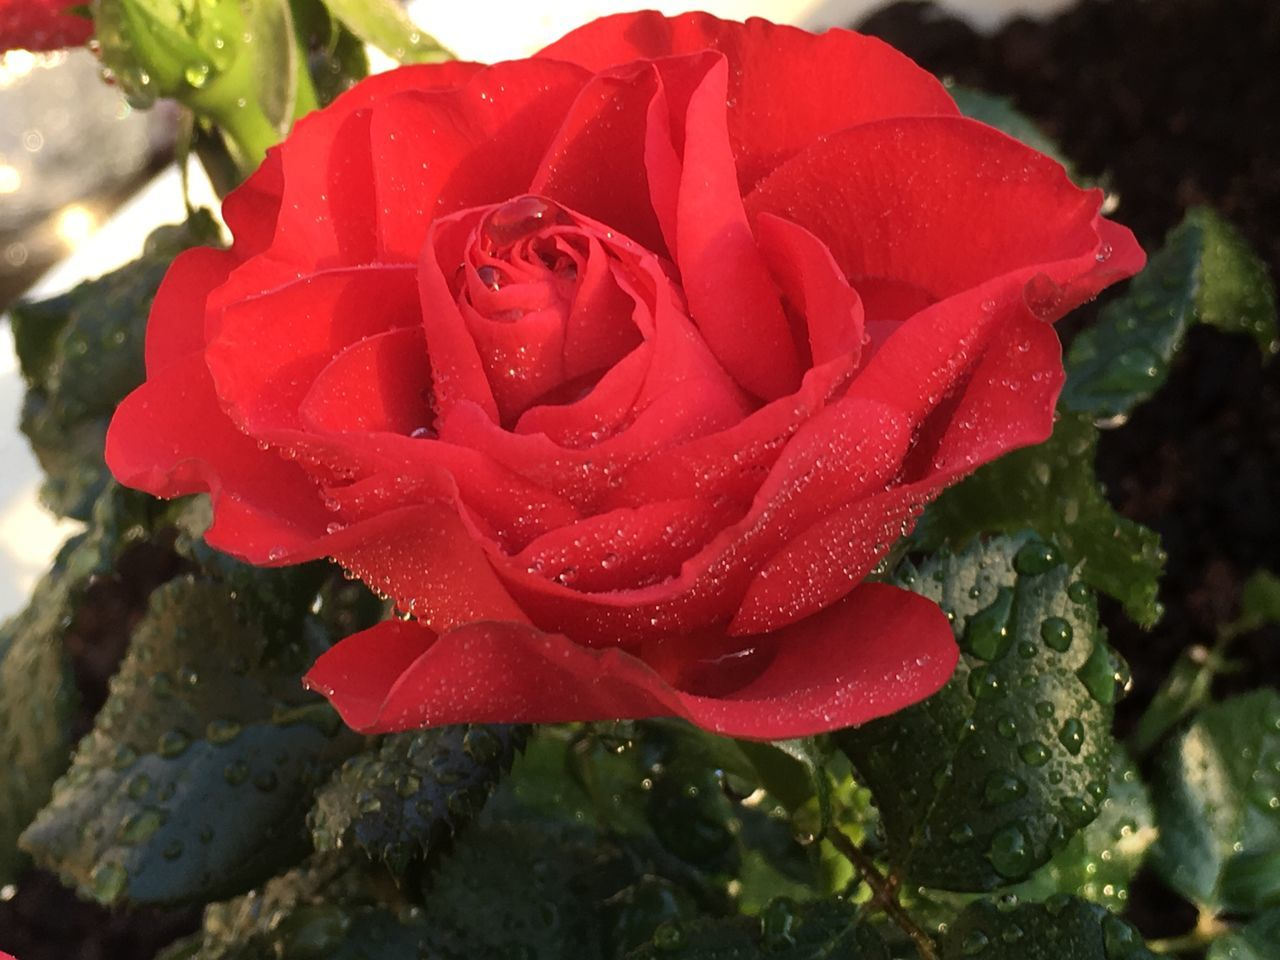 drop, wet, water, nature, growth, freshness, petal, beauty in nature, flower, rose - flower, red, raindrop, fragility, flower head, close-up, no people, plant, purity, day, outdoors, blooming